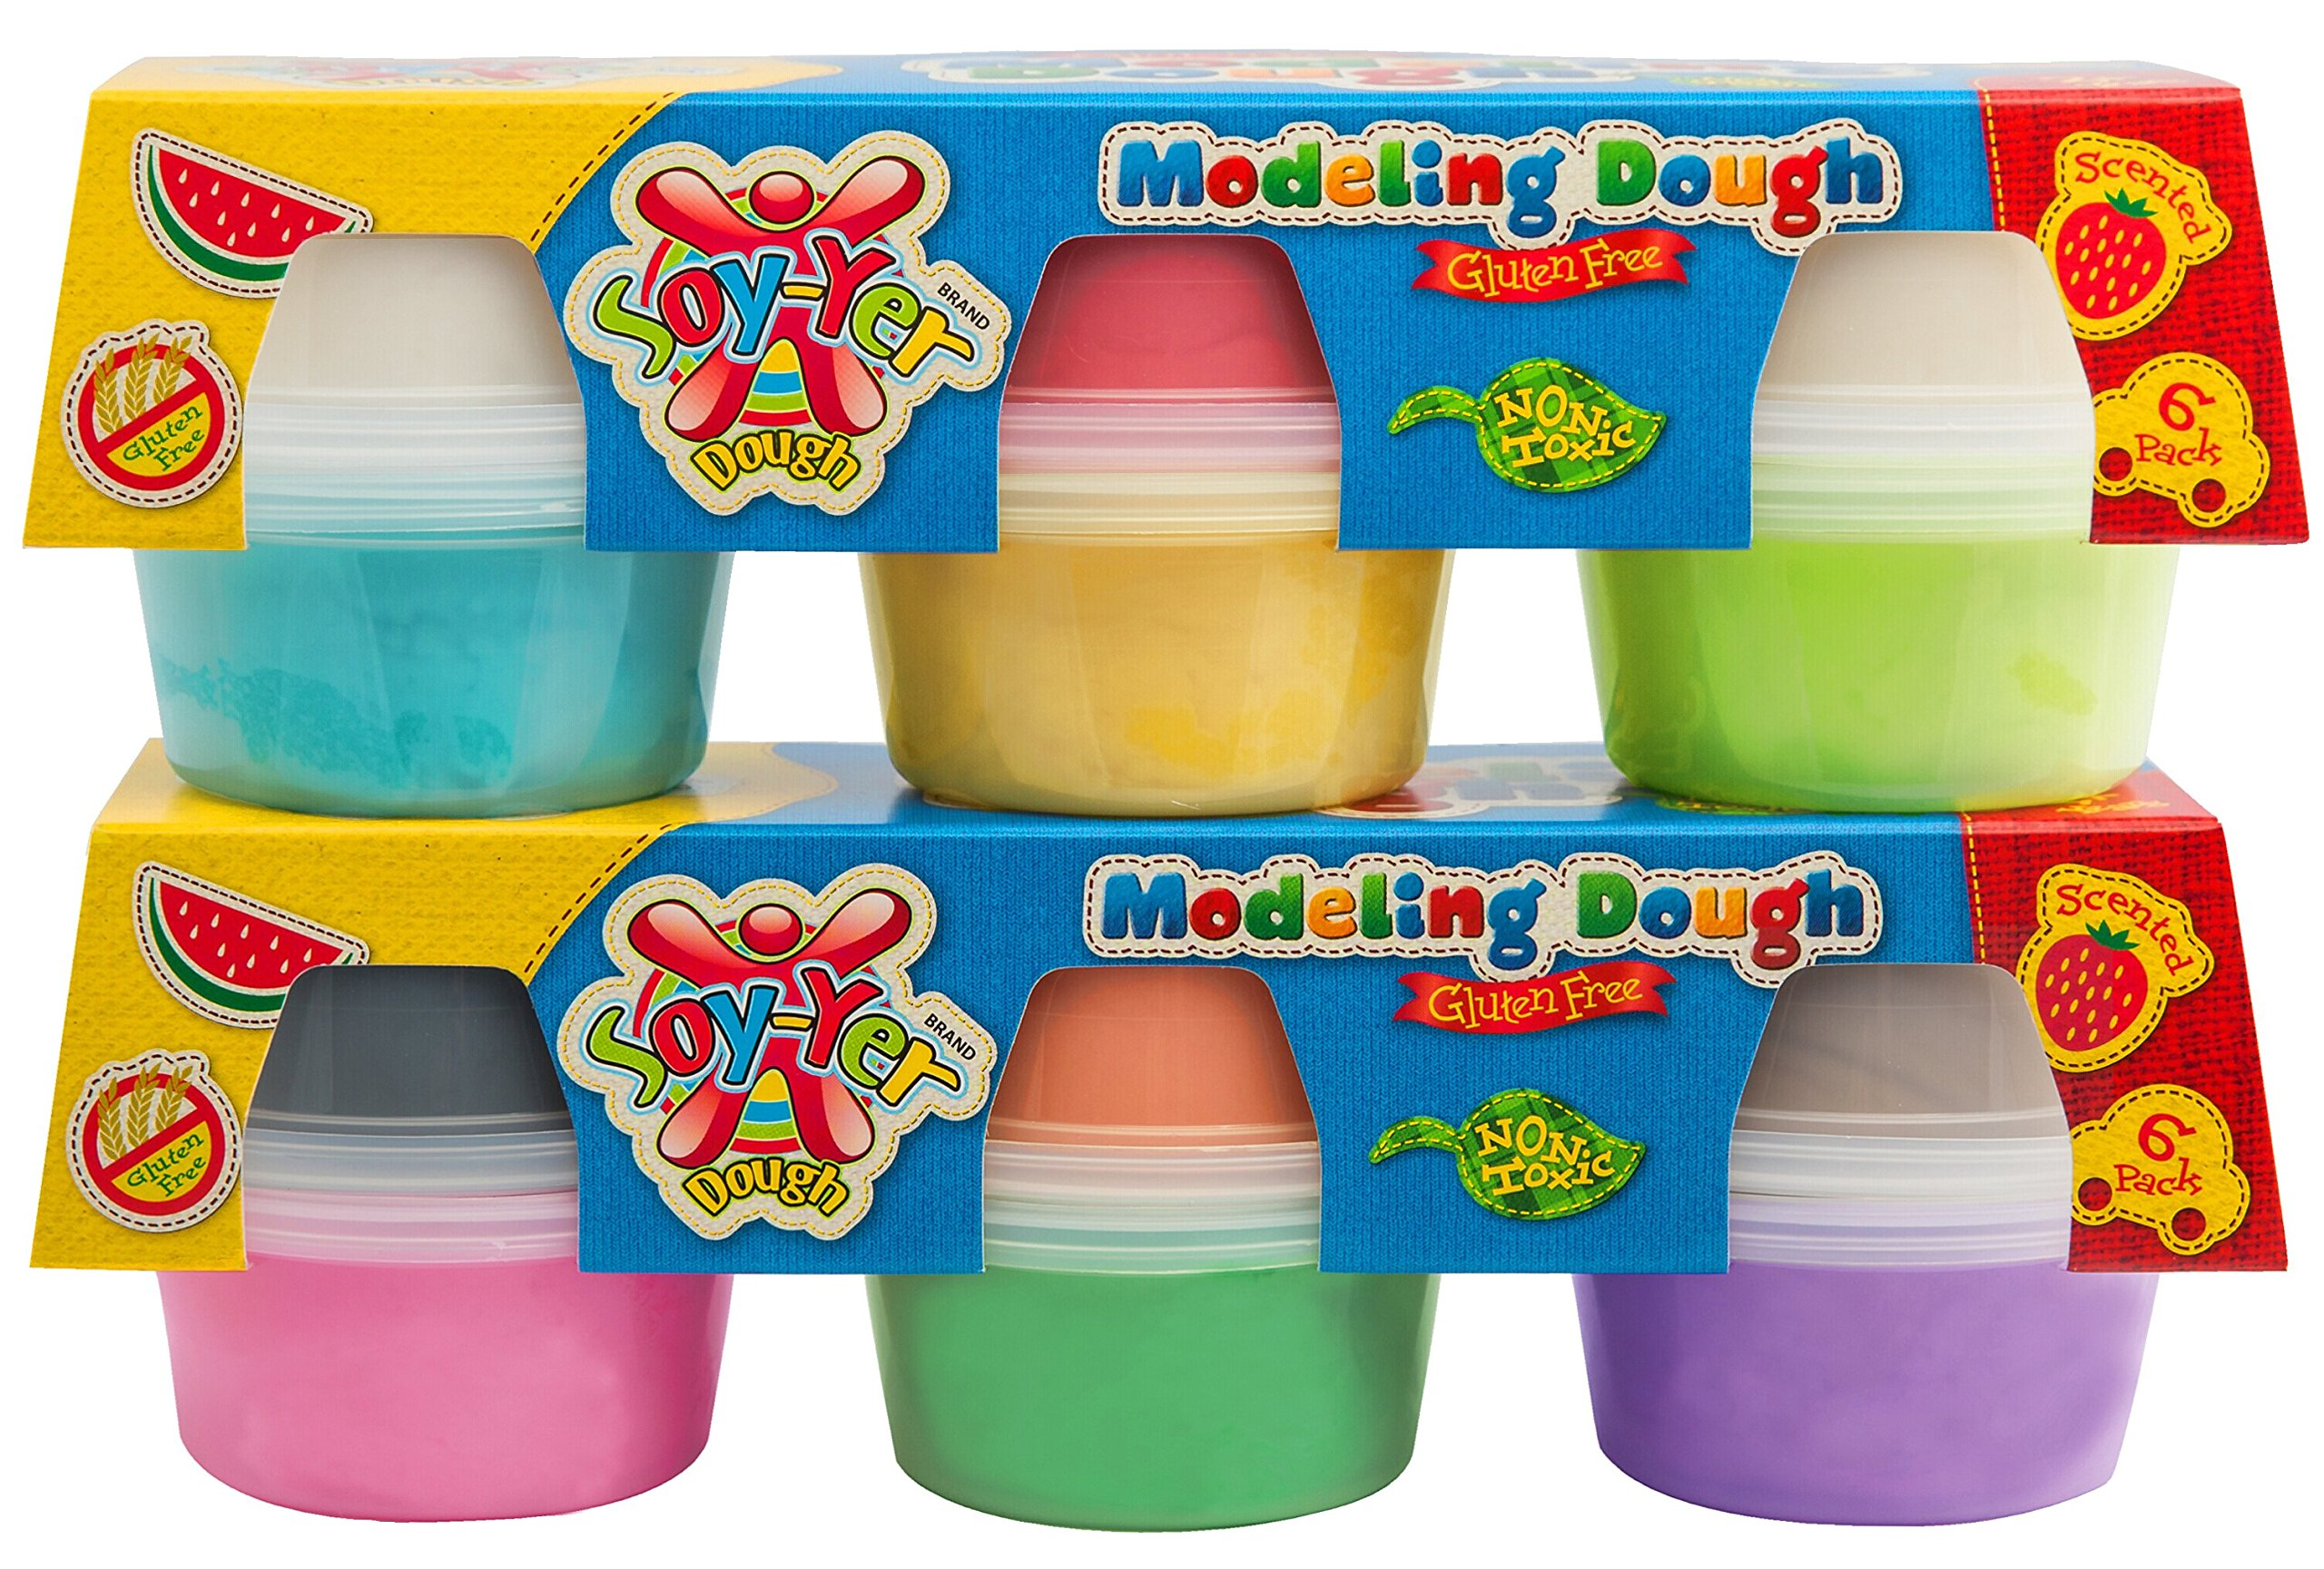 Gluten Free Modeling Play Dough, 10 Pack by Soy-Yer Dough